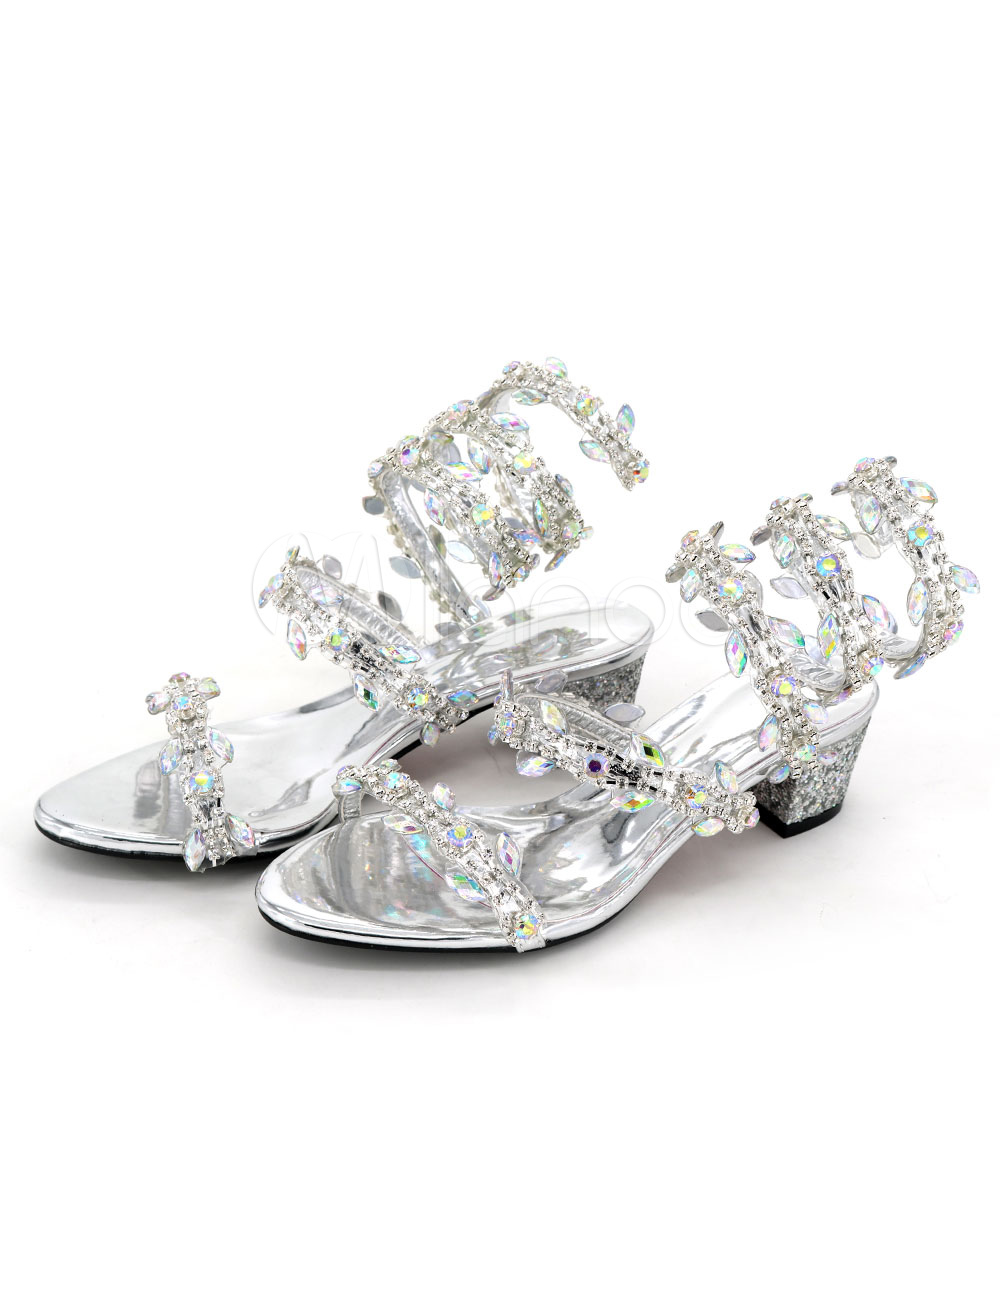 Buy Women's Silver Sandals Glittering Rhinestones Sequins Strappy Tie Leg Chunky Mid Heel Sandals for $52.24 in Milanoo store